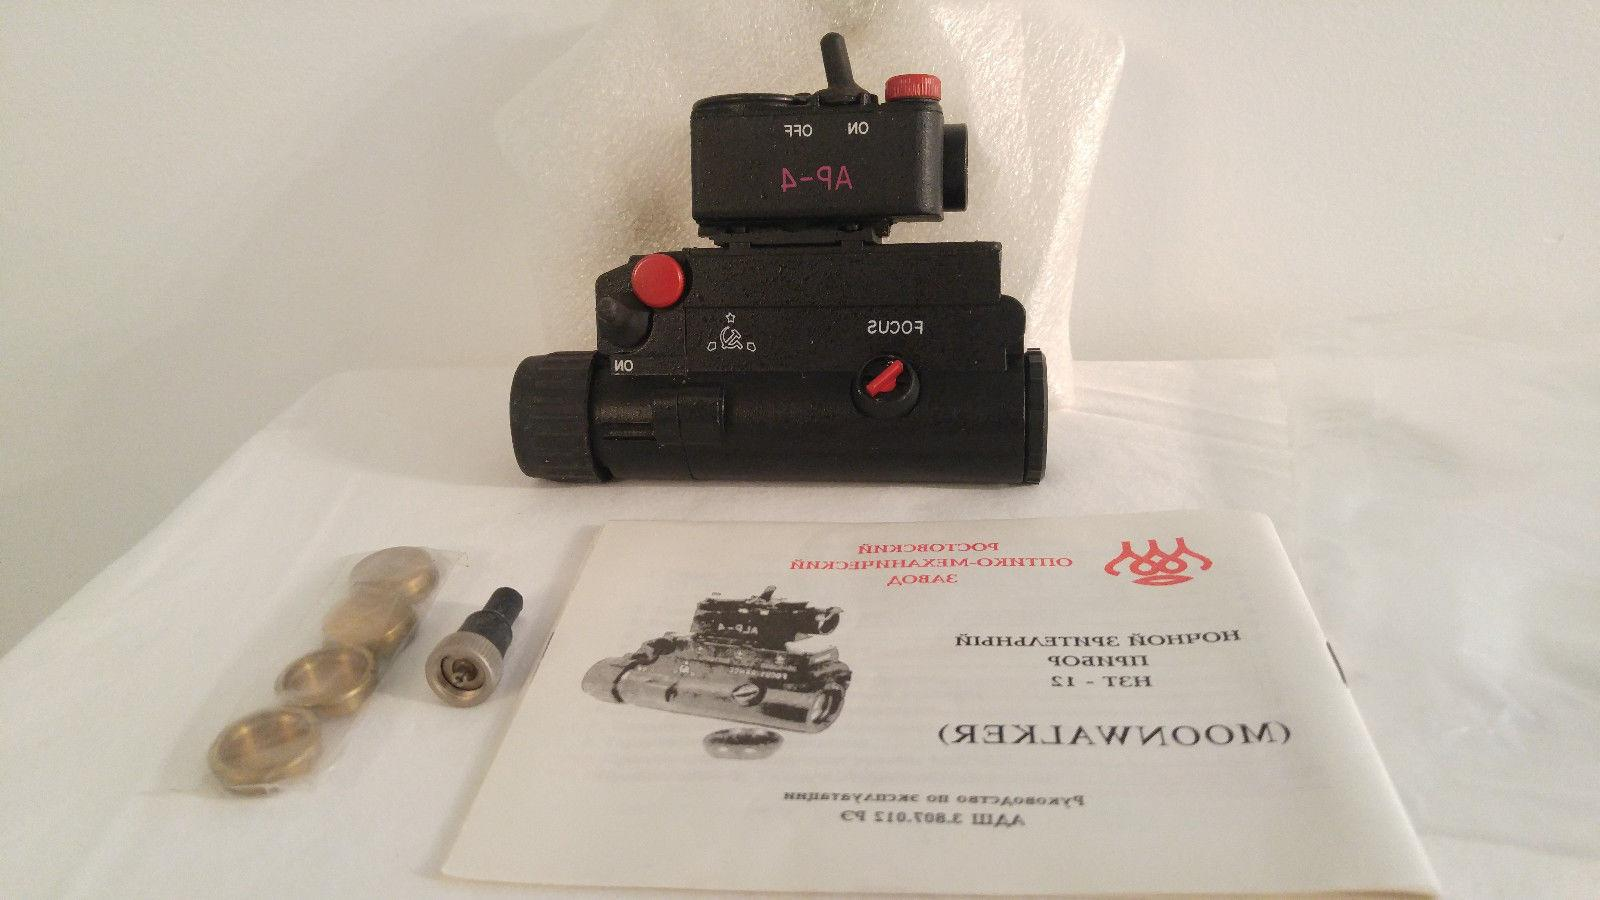 Night Vision Optic Pocket Size w/ IR Illuminator  AP-4 MoonW